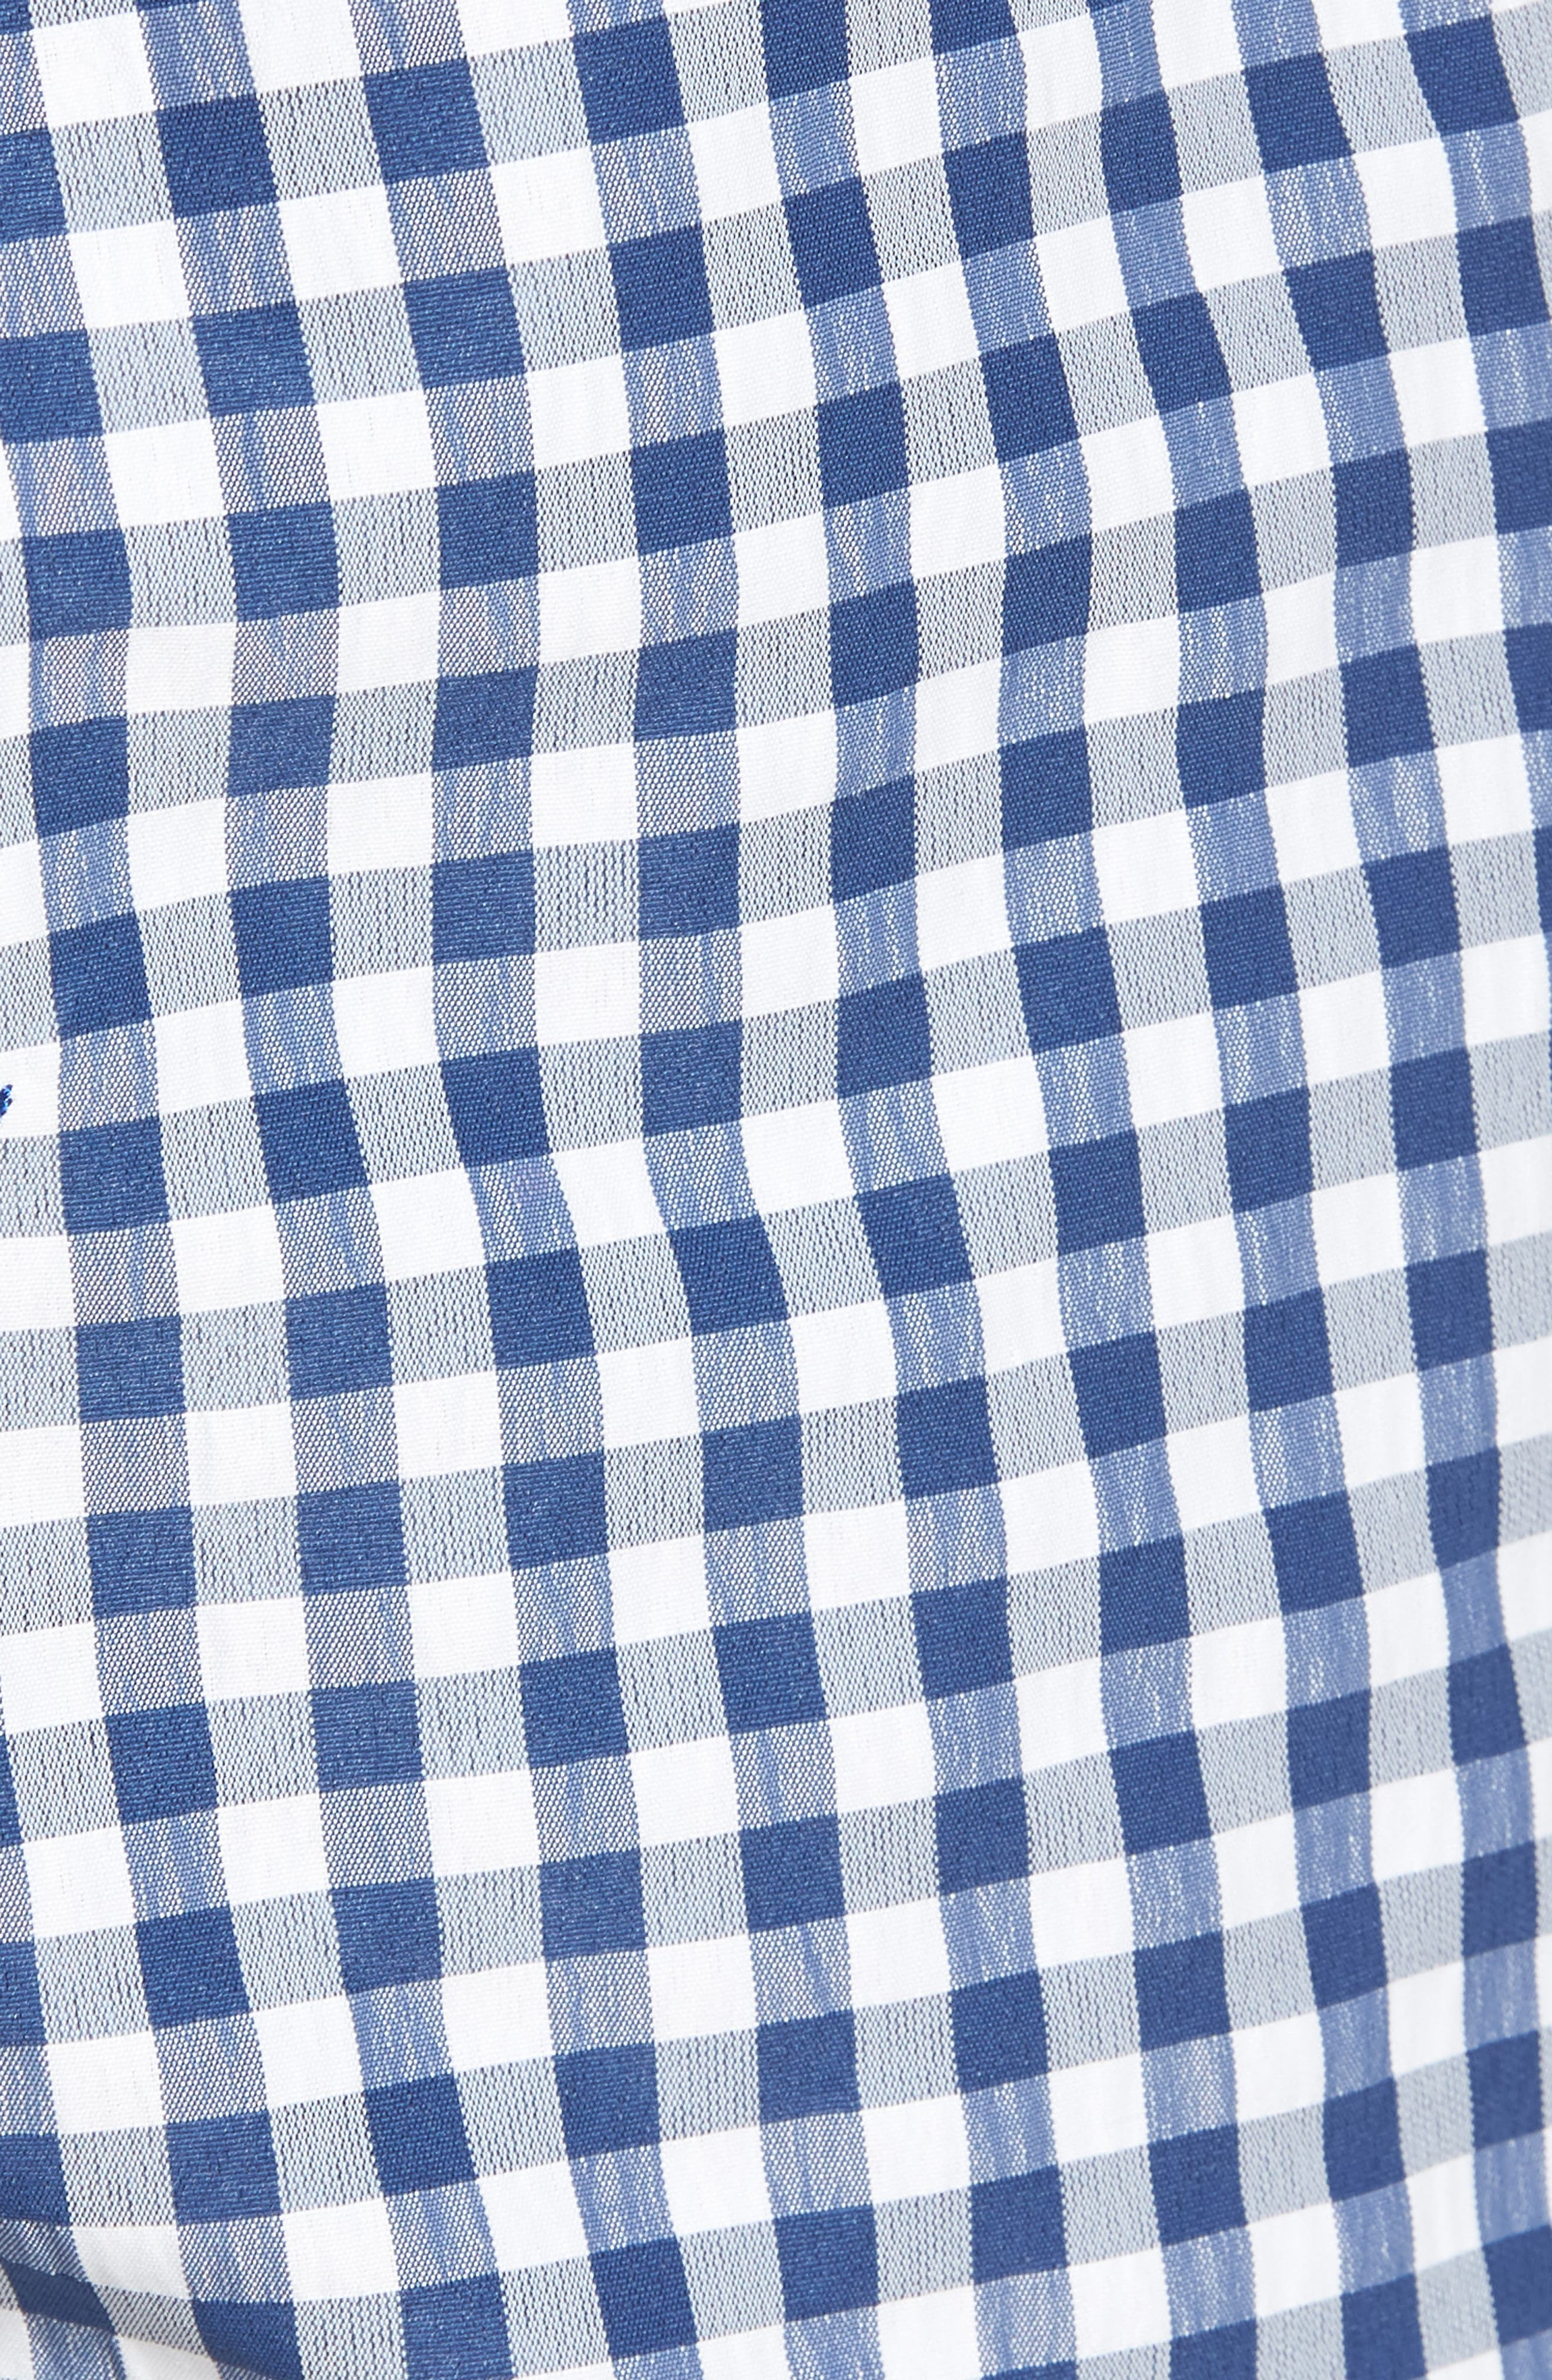 VINEYARD VINES,                             Chappy Flag Whale Embroidered Gingham Swim Trunks,                             Alternate thumbnail 5, color,                             461